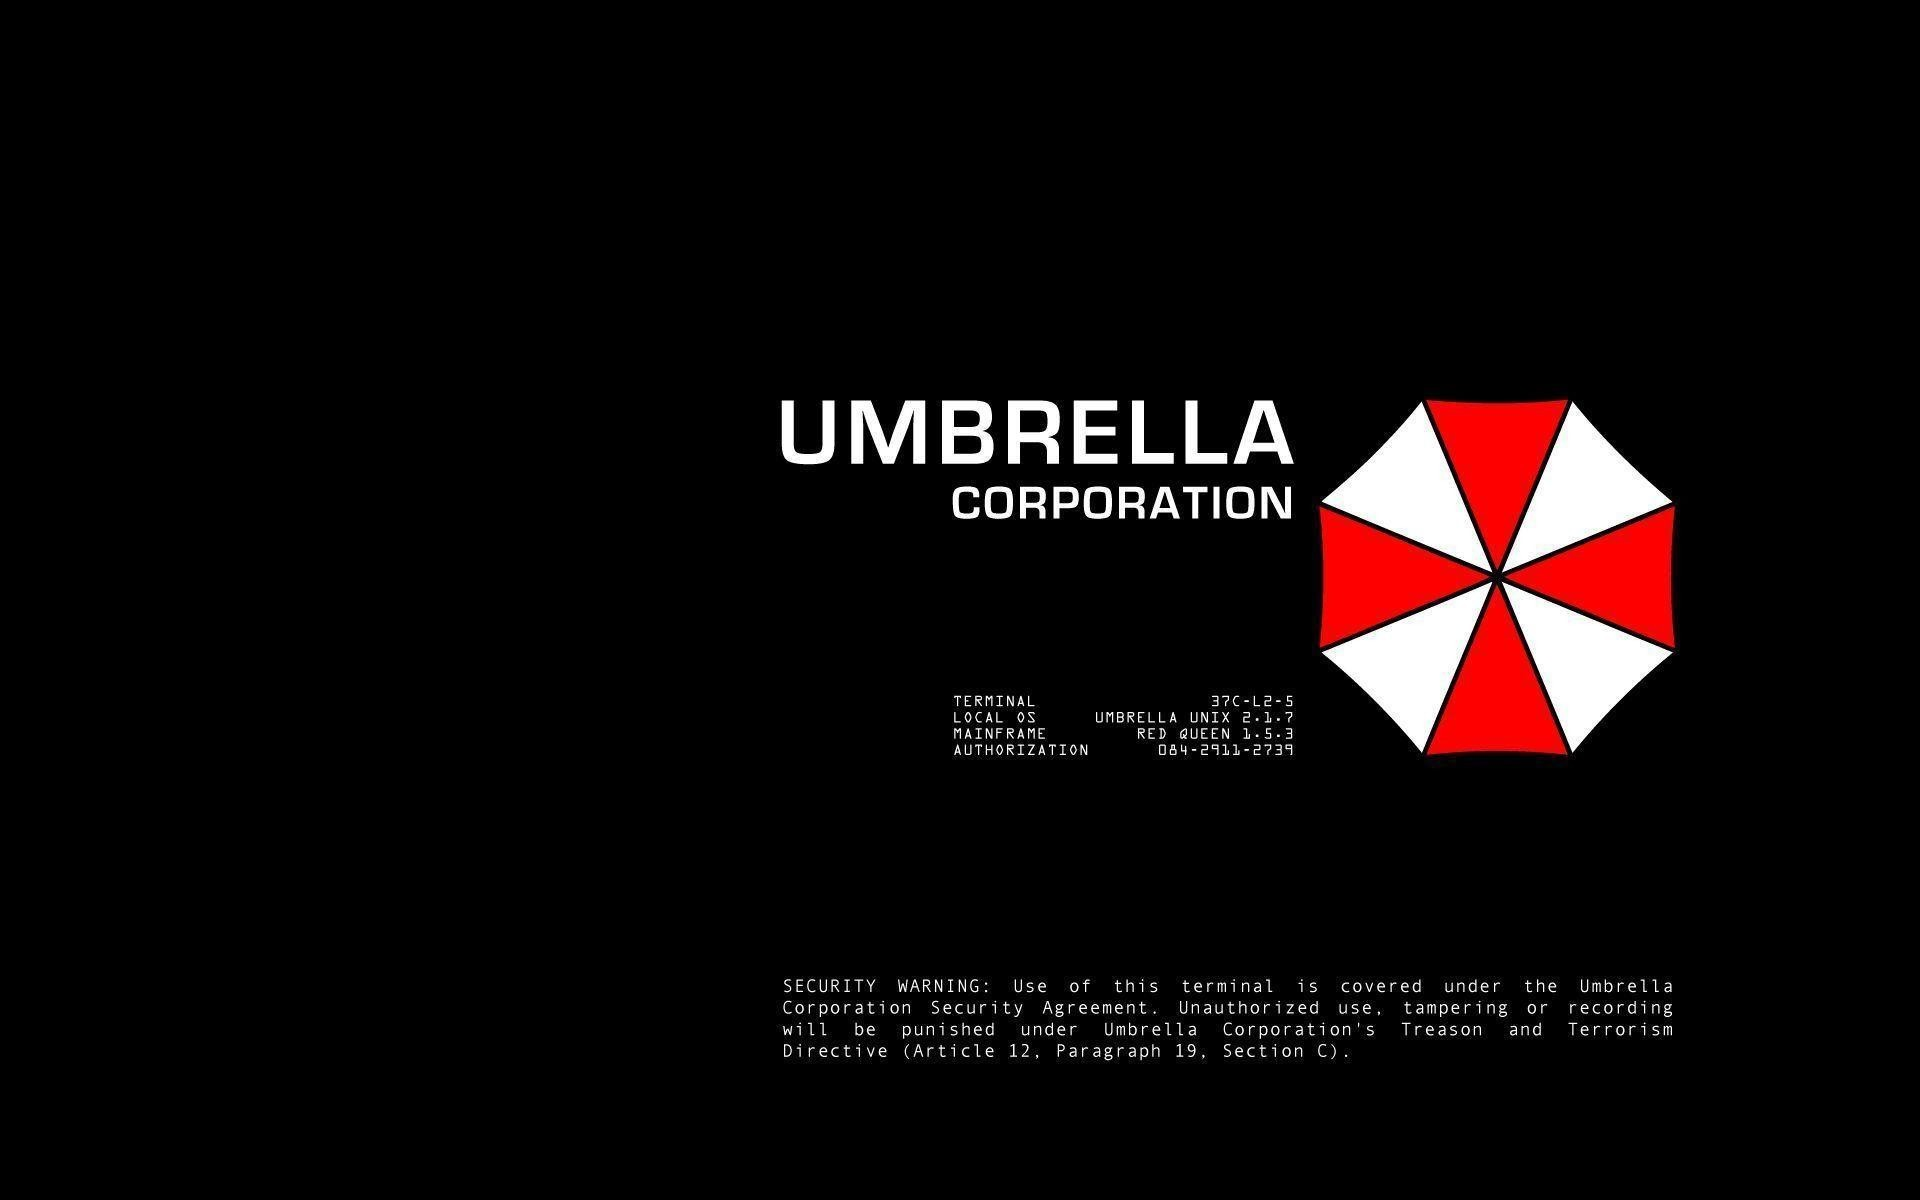 Umbrella corporation wallpapers 67 pictures - Umbrella corporation wallpaper hd 1366x768 ...